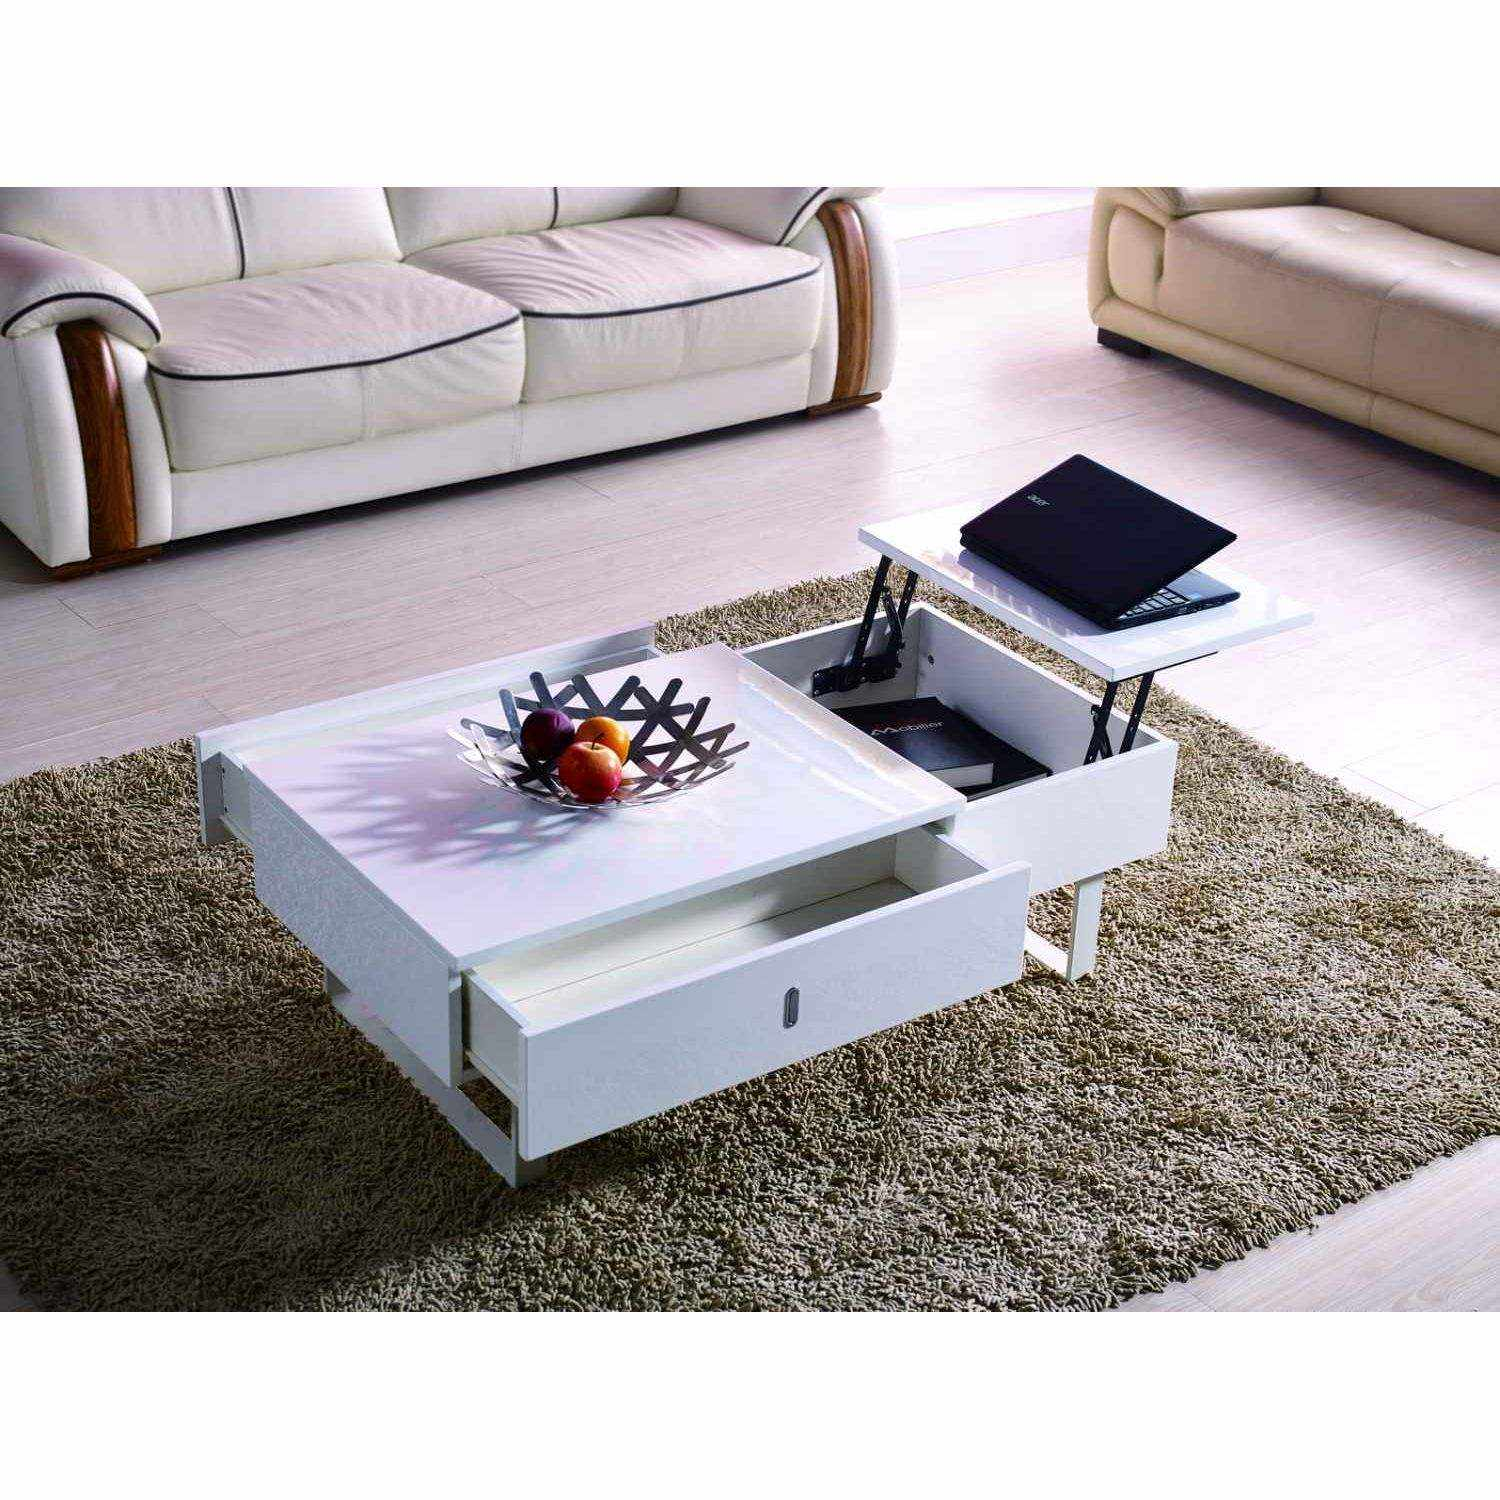 Deco in paris table basse relevable multifonction laque blanc tab blanc multi - Table basse relevable blanc laque ...